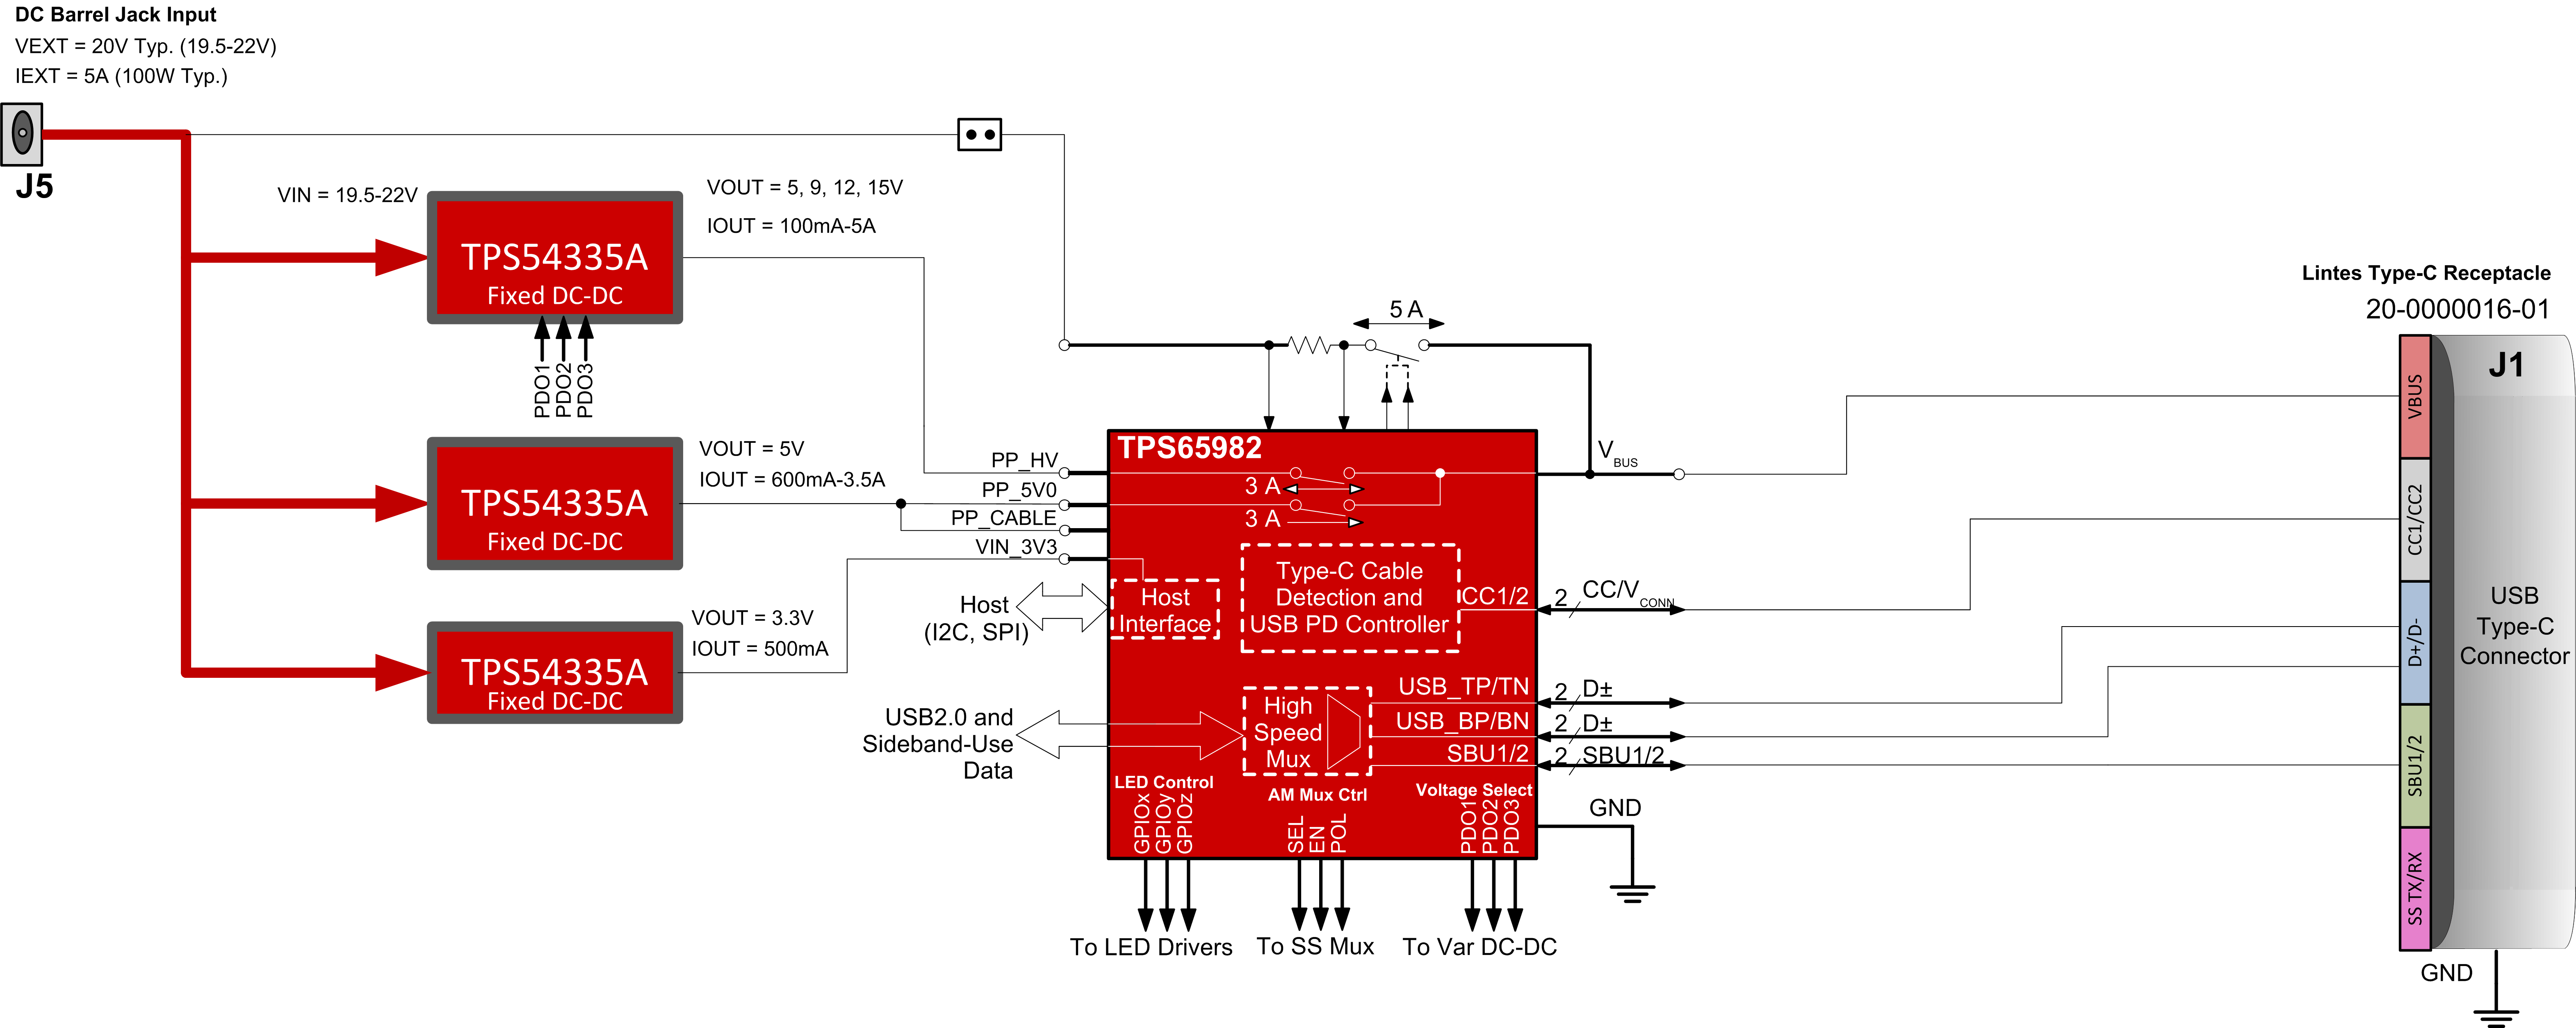 The attached schematic for this design shows the Power Path containing the  LM3489 on Page 2 and the Type-C connector and TPS65982 PD controlleron Page  1.